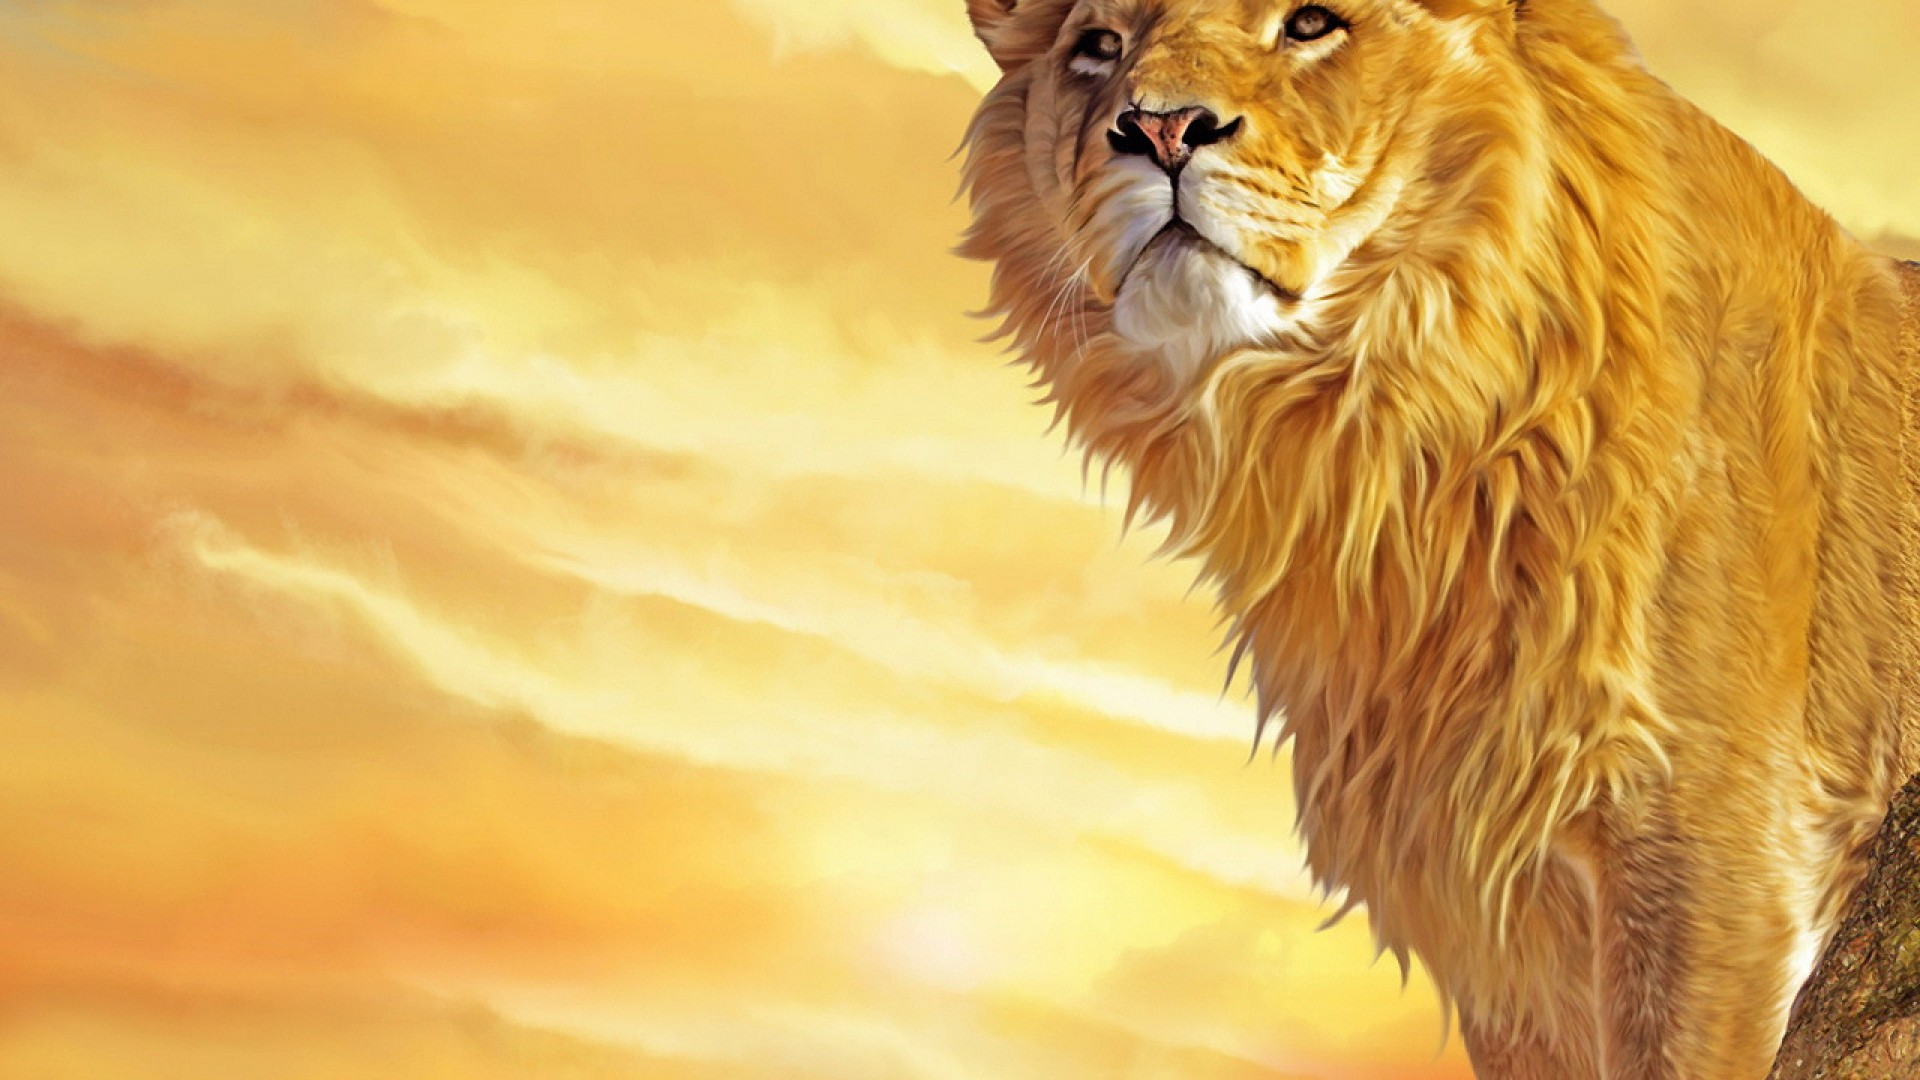 Amazing Wallpaper Logo Lion - lion-background_015819506_22  Collection_784129.jpg